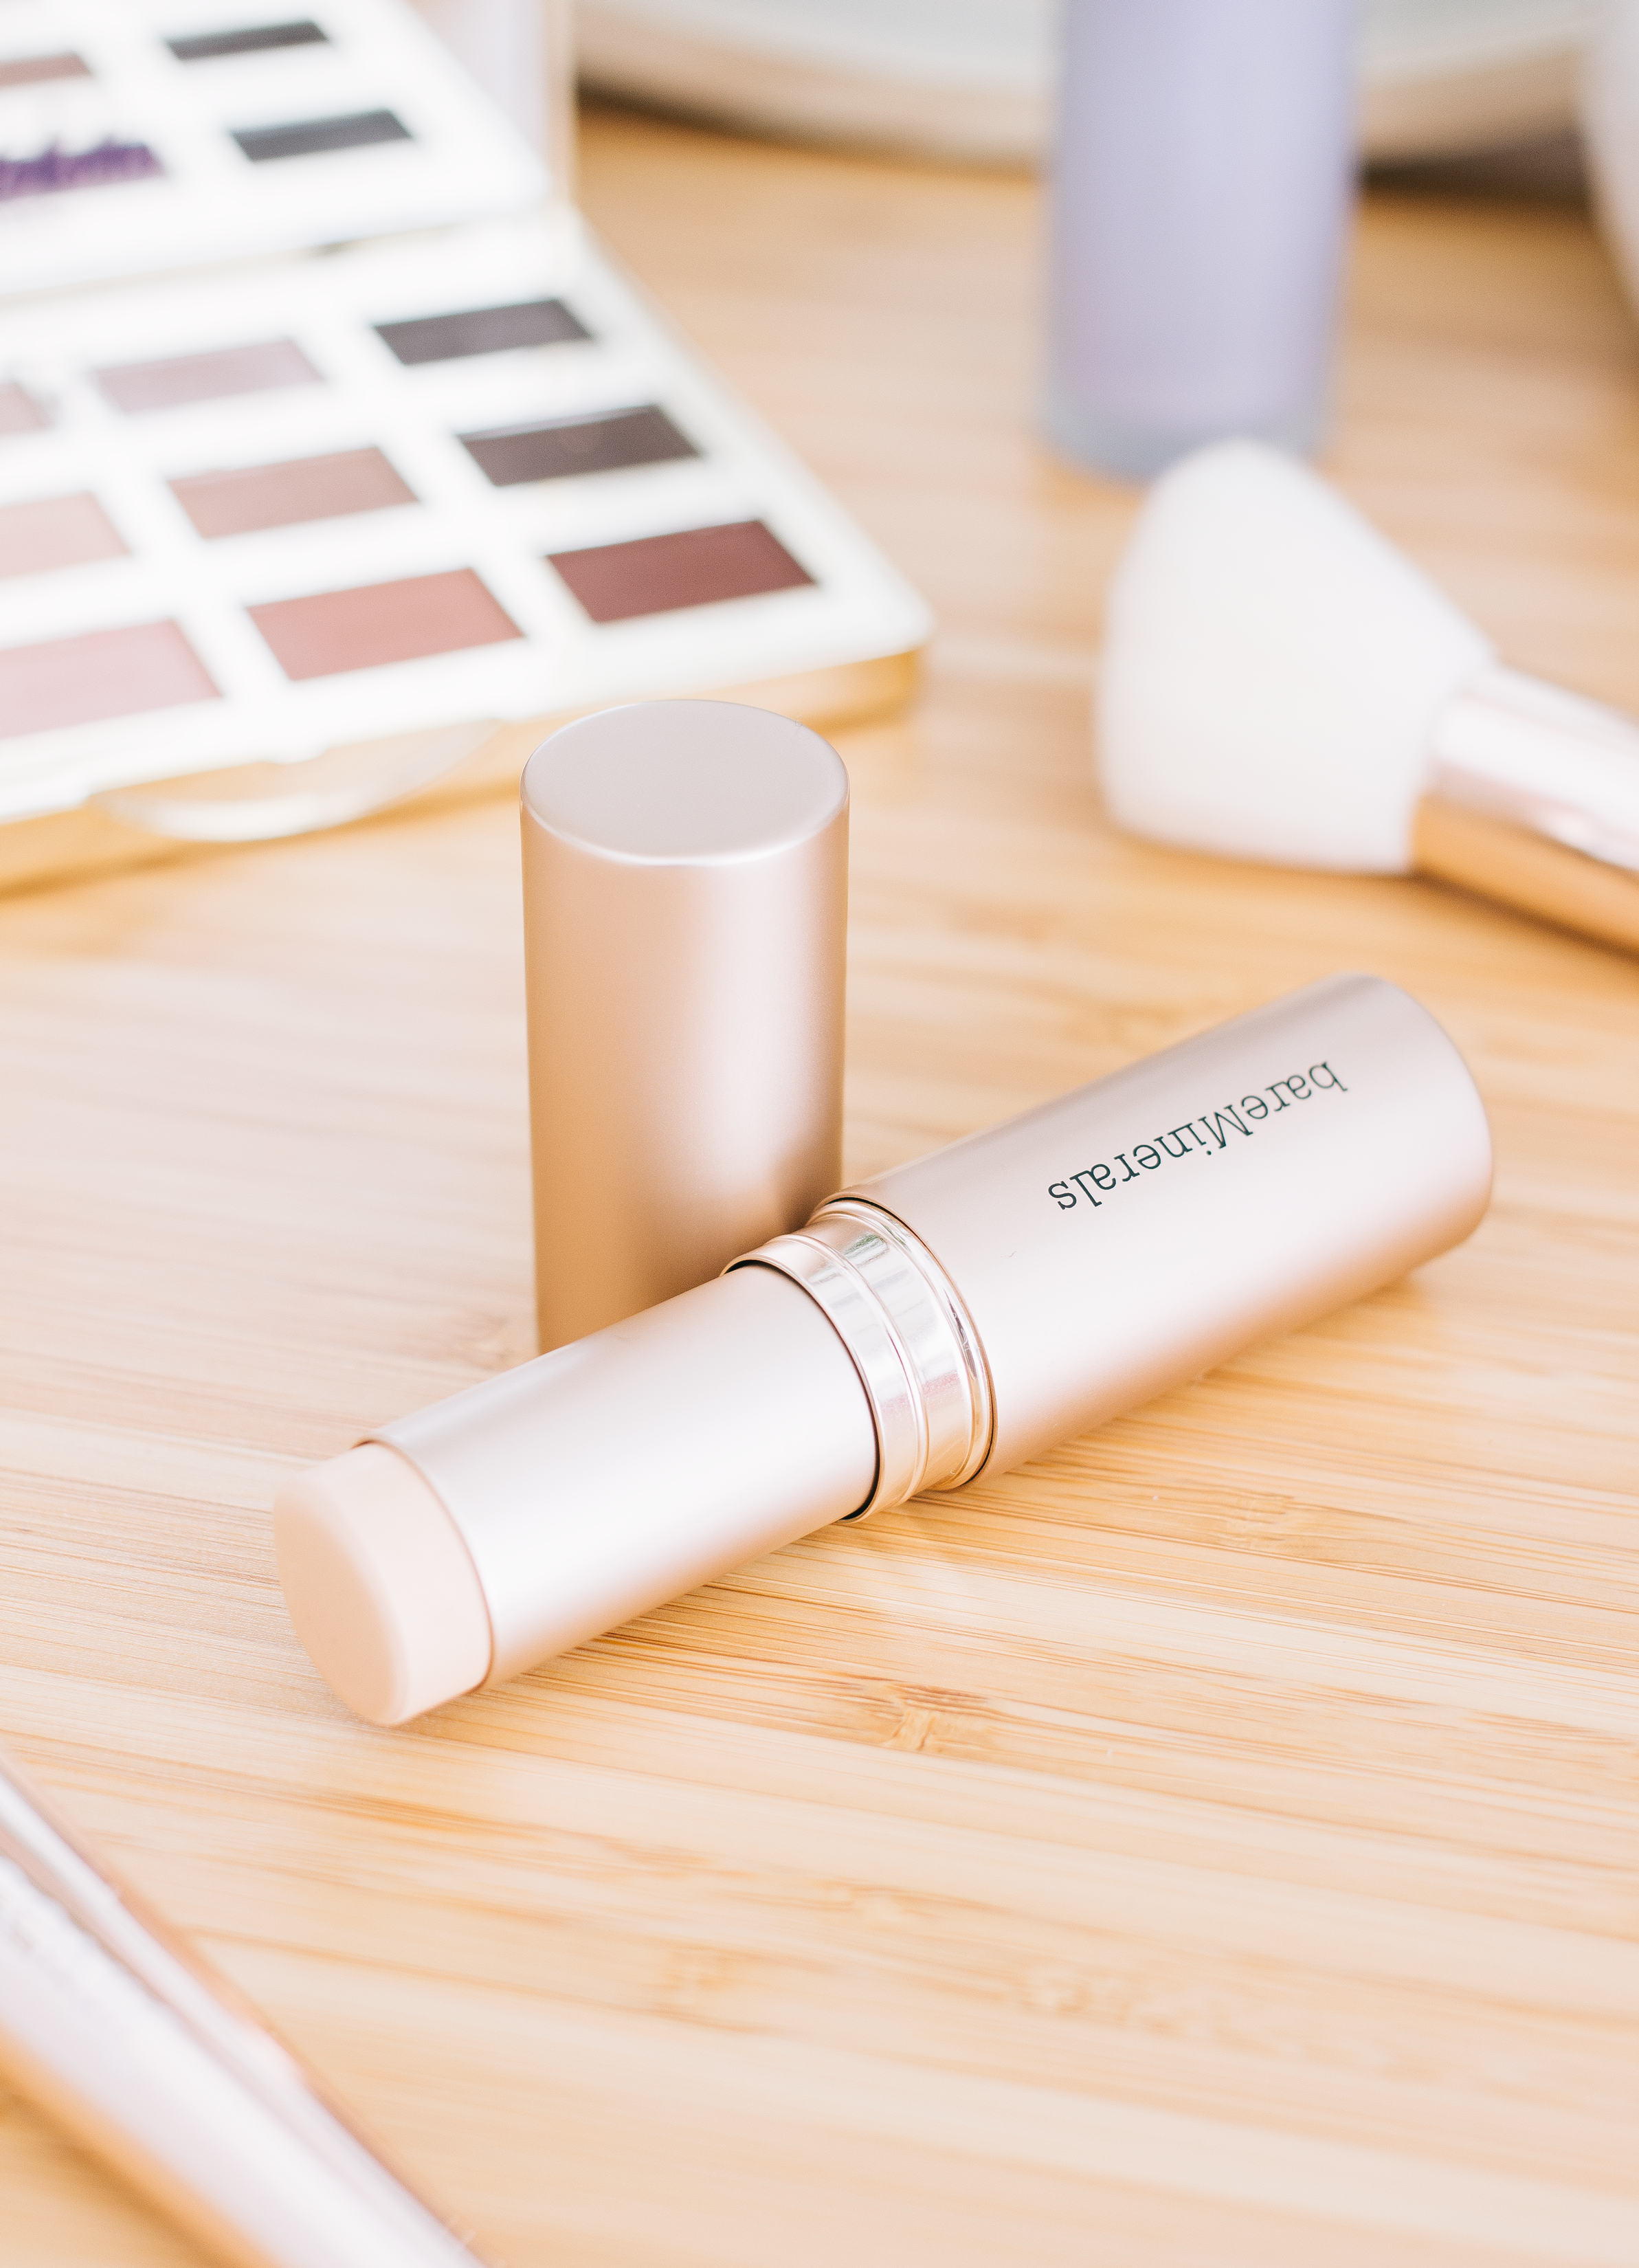 bareminerals complexion rescue hydrating foundation stick (gifted as part of a paid Ig promotion) - I've recently worked on the launch of this foundation stick (this is not part of that work) but as I've enjoyed using it so much I thought I'd share it on here too. Foundation sticks are something that I've really come to love, for years I thought they'd be awkward to use but they're from that. Infact they're undoubtedly one of the most fuss free products in my makeup stash. If you've used the original Complexion Rescue tinted moisturiser then you will know how kind and comforting that feels on the skin and this feels exactly the same. It glides on the skin with ease and blends in effortlessly offering a good level of coverage and wears comfortably throughout the day. This will be a wonderful one in the warmer months as it contains an SPF of 25, even though I like to use a completely dedicated SPF it's always nice to know your products have it in too.